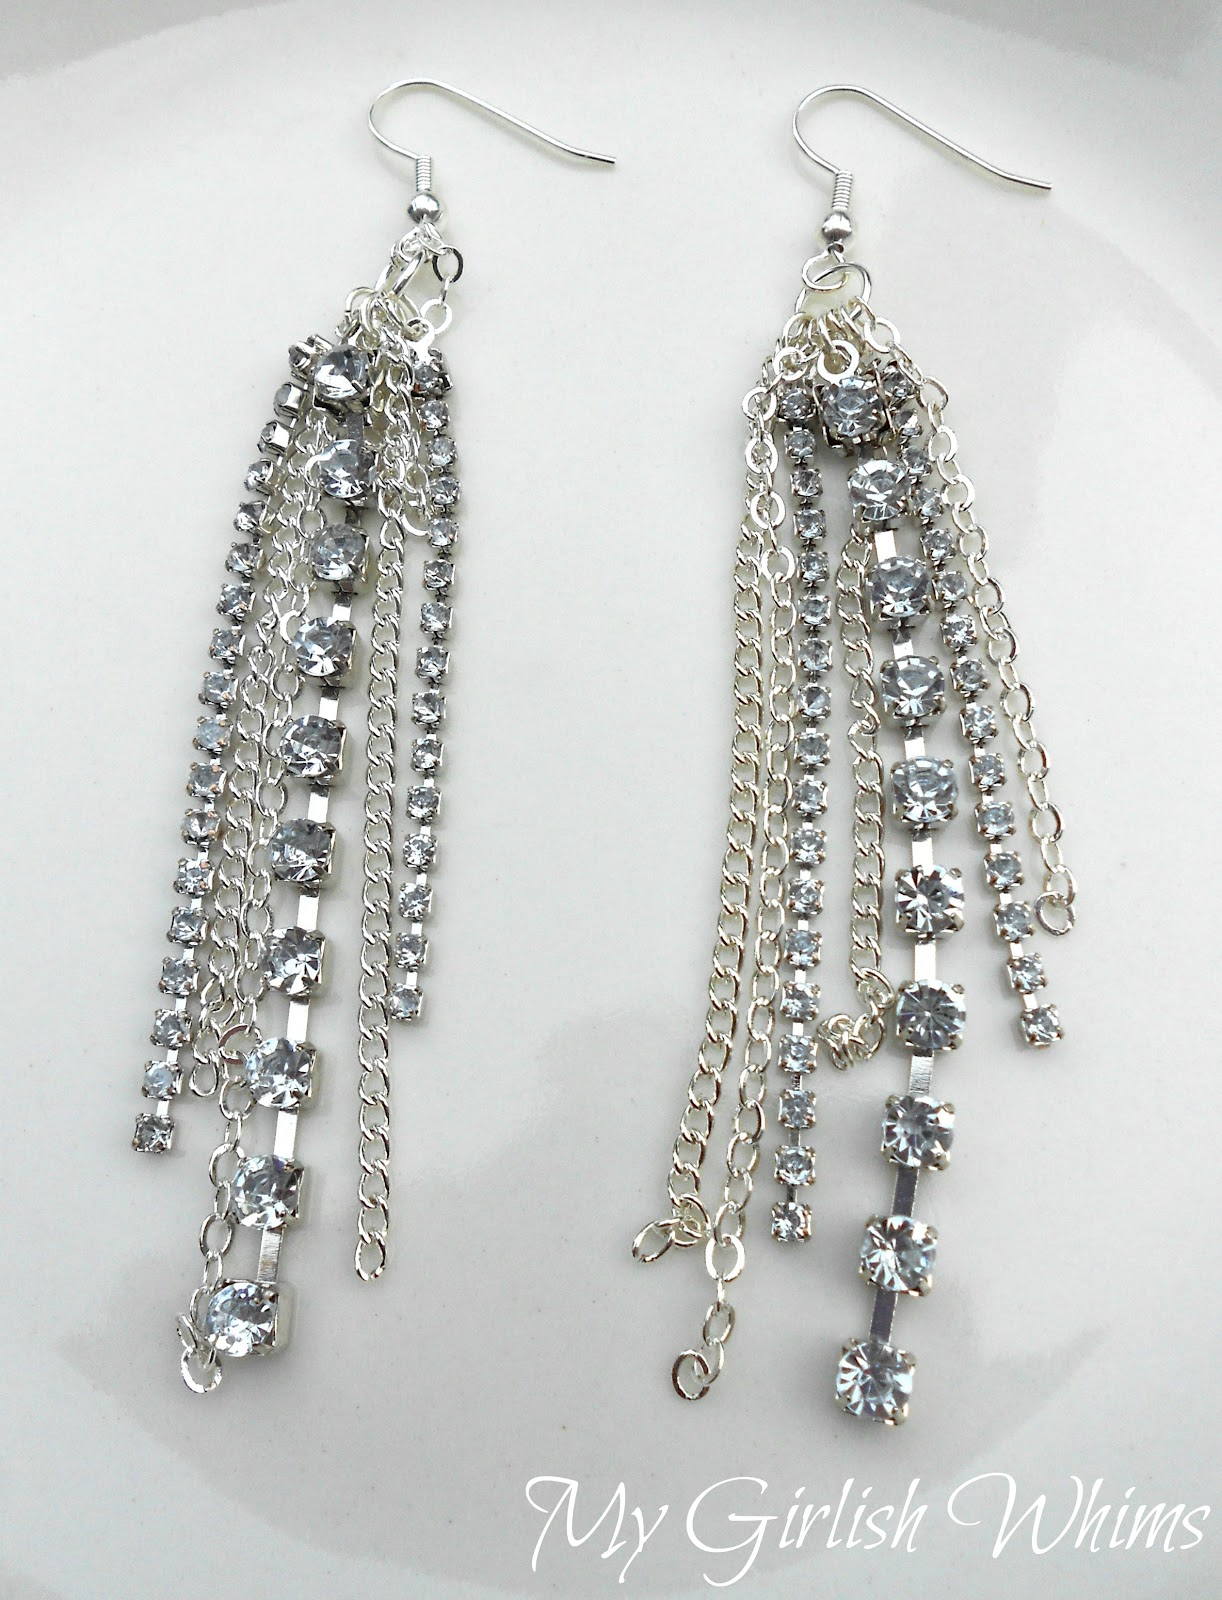 Elegant vintage rhinestone earrings, for example, are reminiscent of times past when they were just as popular as they are now. Those looking to add a more dramatic element to their look may also opt for long rhinestone earrings that glitter just like gemstones and highlight the lines of the neck.